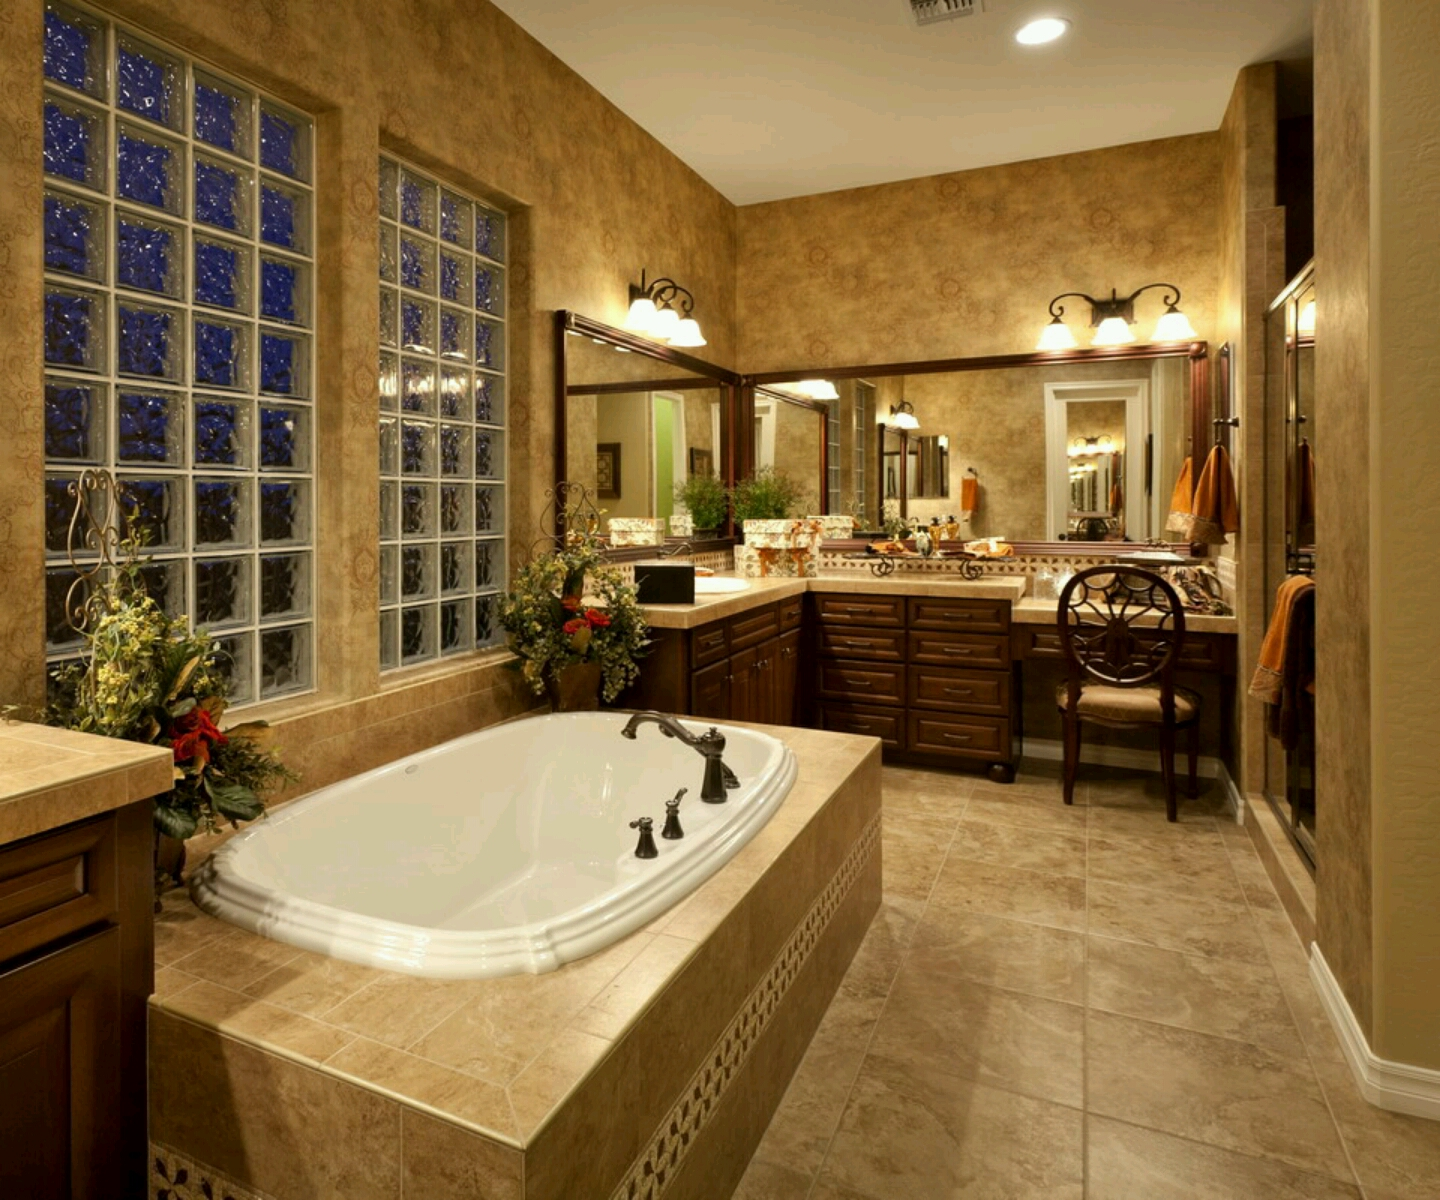 Luxury modern bathrooms designs ideas furniture gallery for Bathroom design luxury